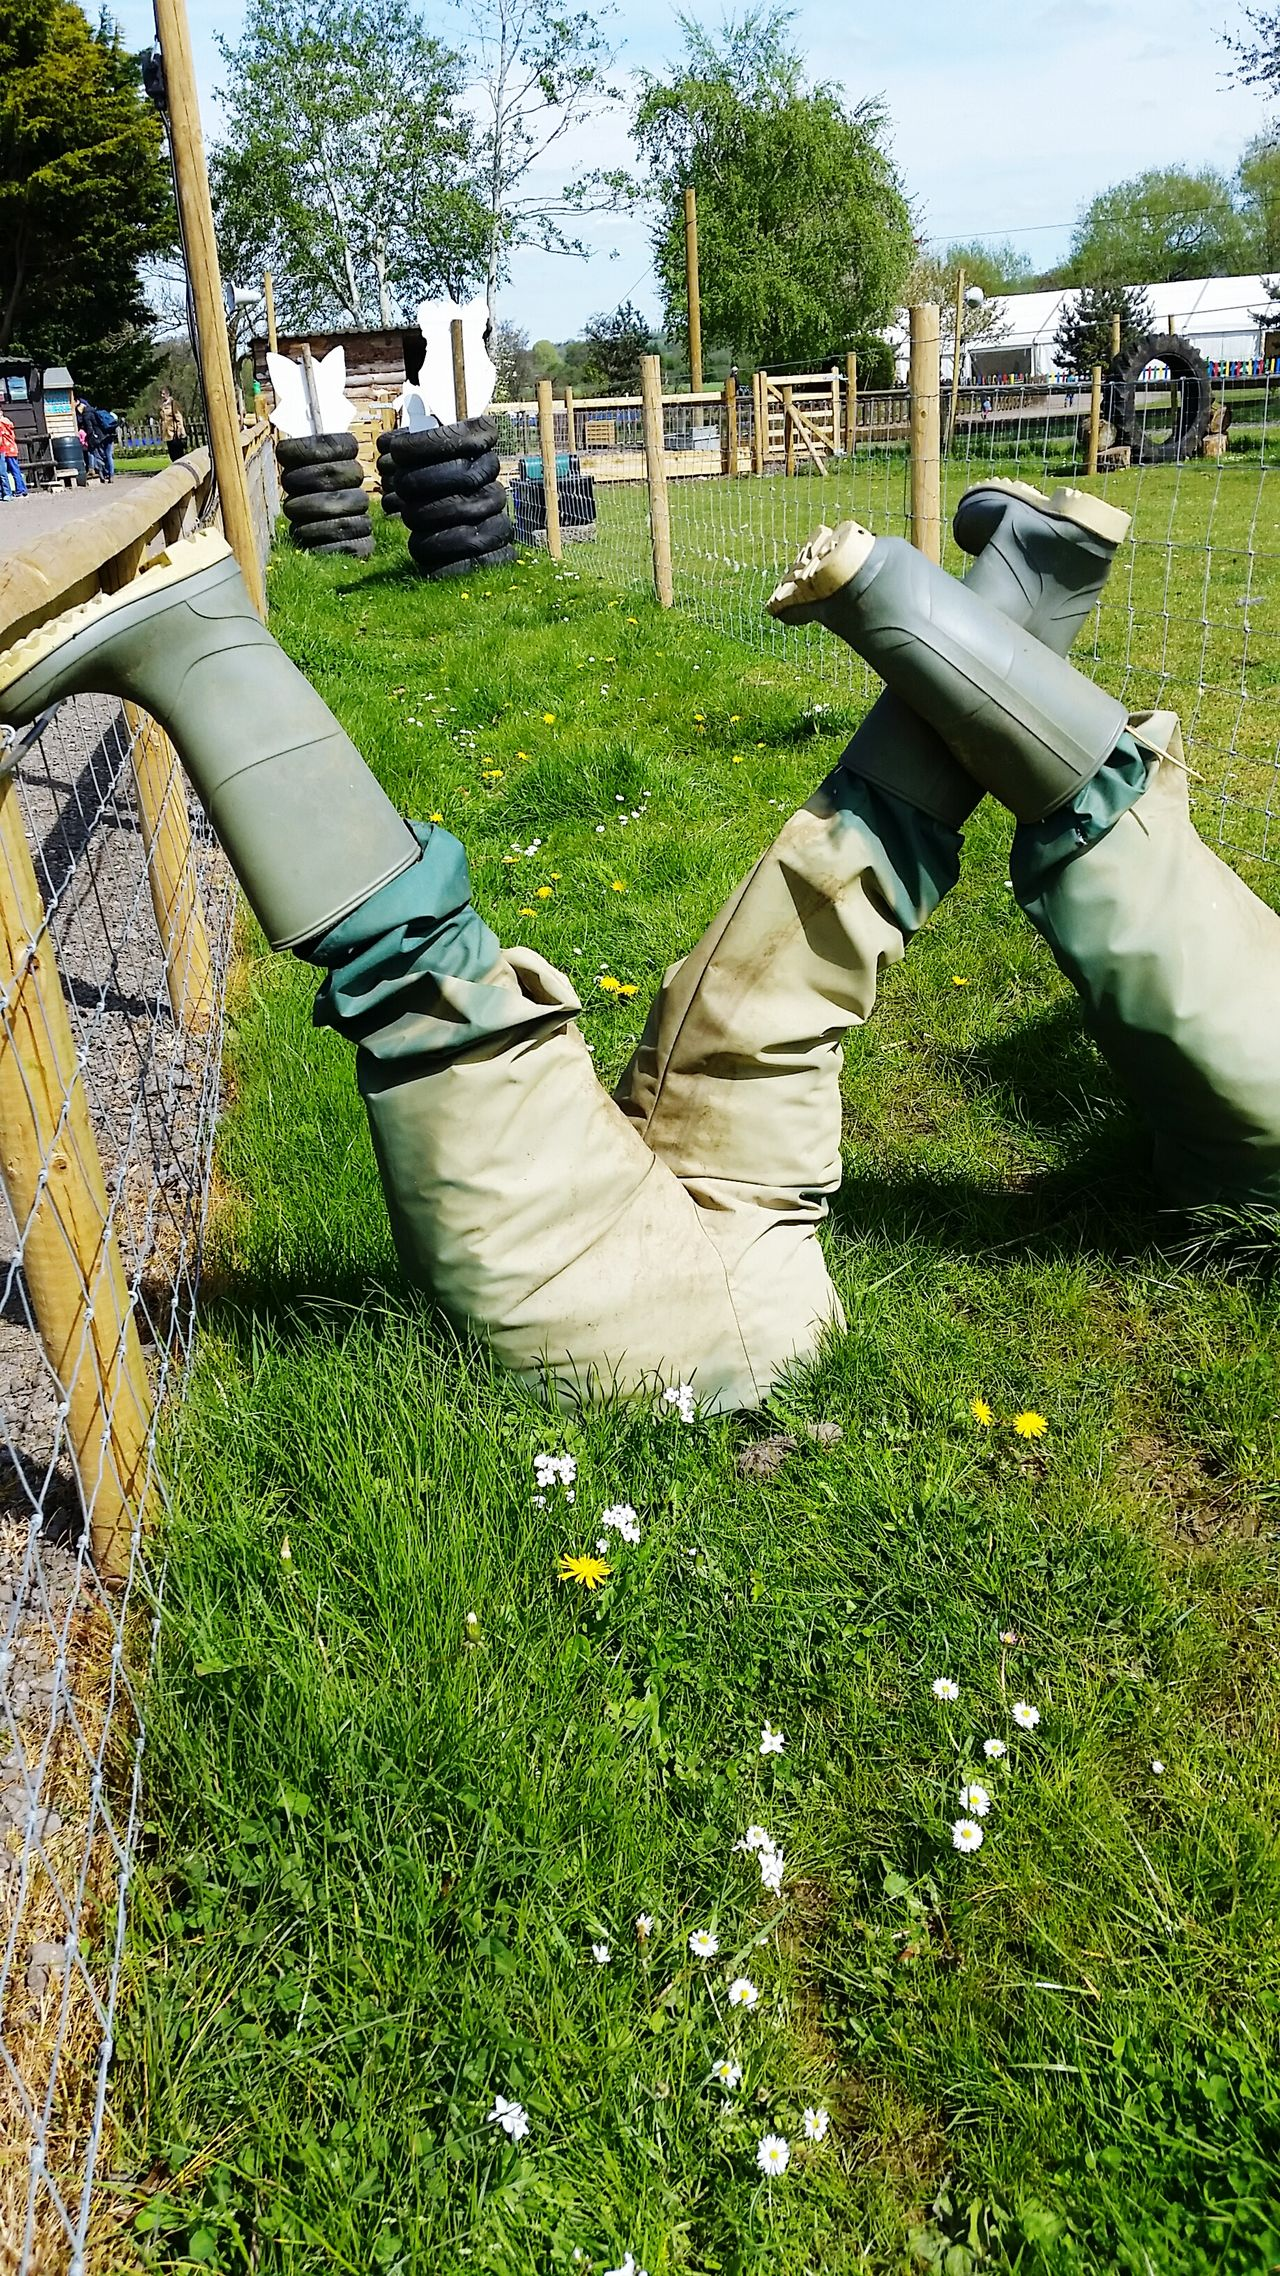 Front Or Back Yard Lawn Outdoors Day Park - Man Made Space No People Growth Nature Shadow Grass Tree Art Is Everywhere Happiness Human Body Part Adult People Legs Upside Down Upsidedown Wellington  Wellies  Wellington Boots Leisure Activity EyeEm Diversity Close-up